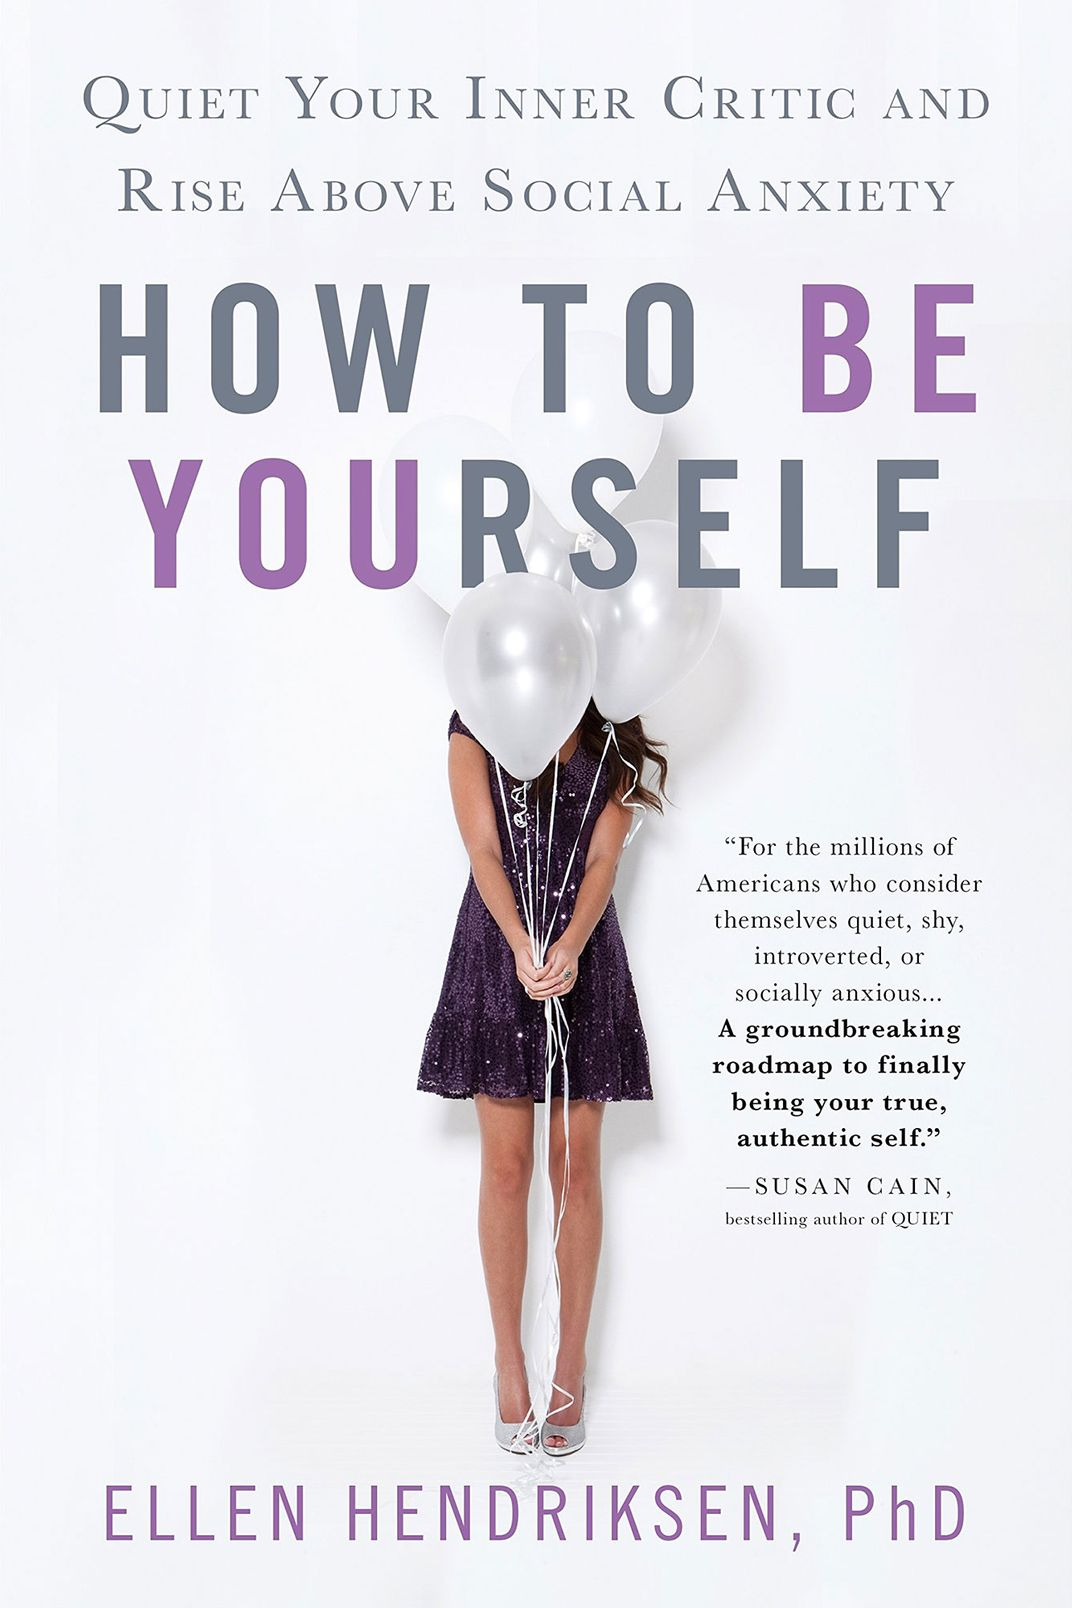 How to Be Yourself, by Ellen Hendriksen